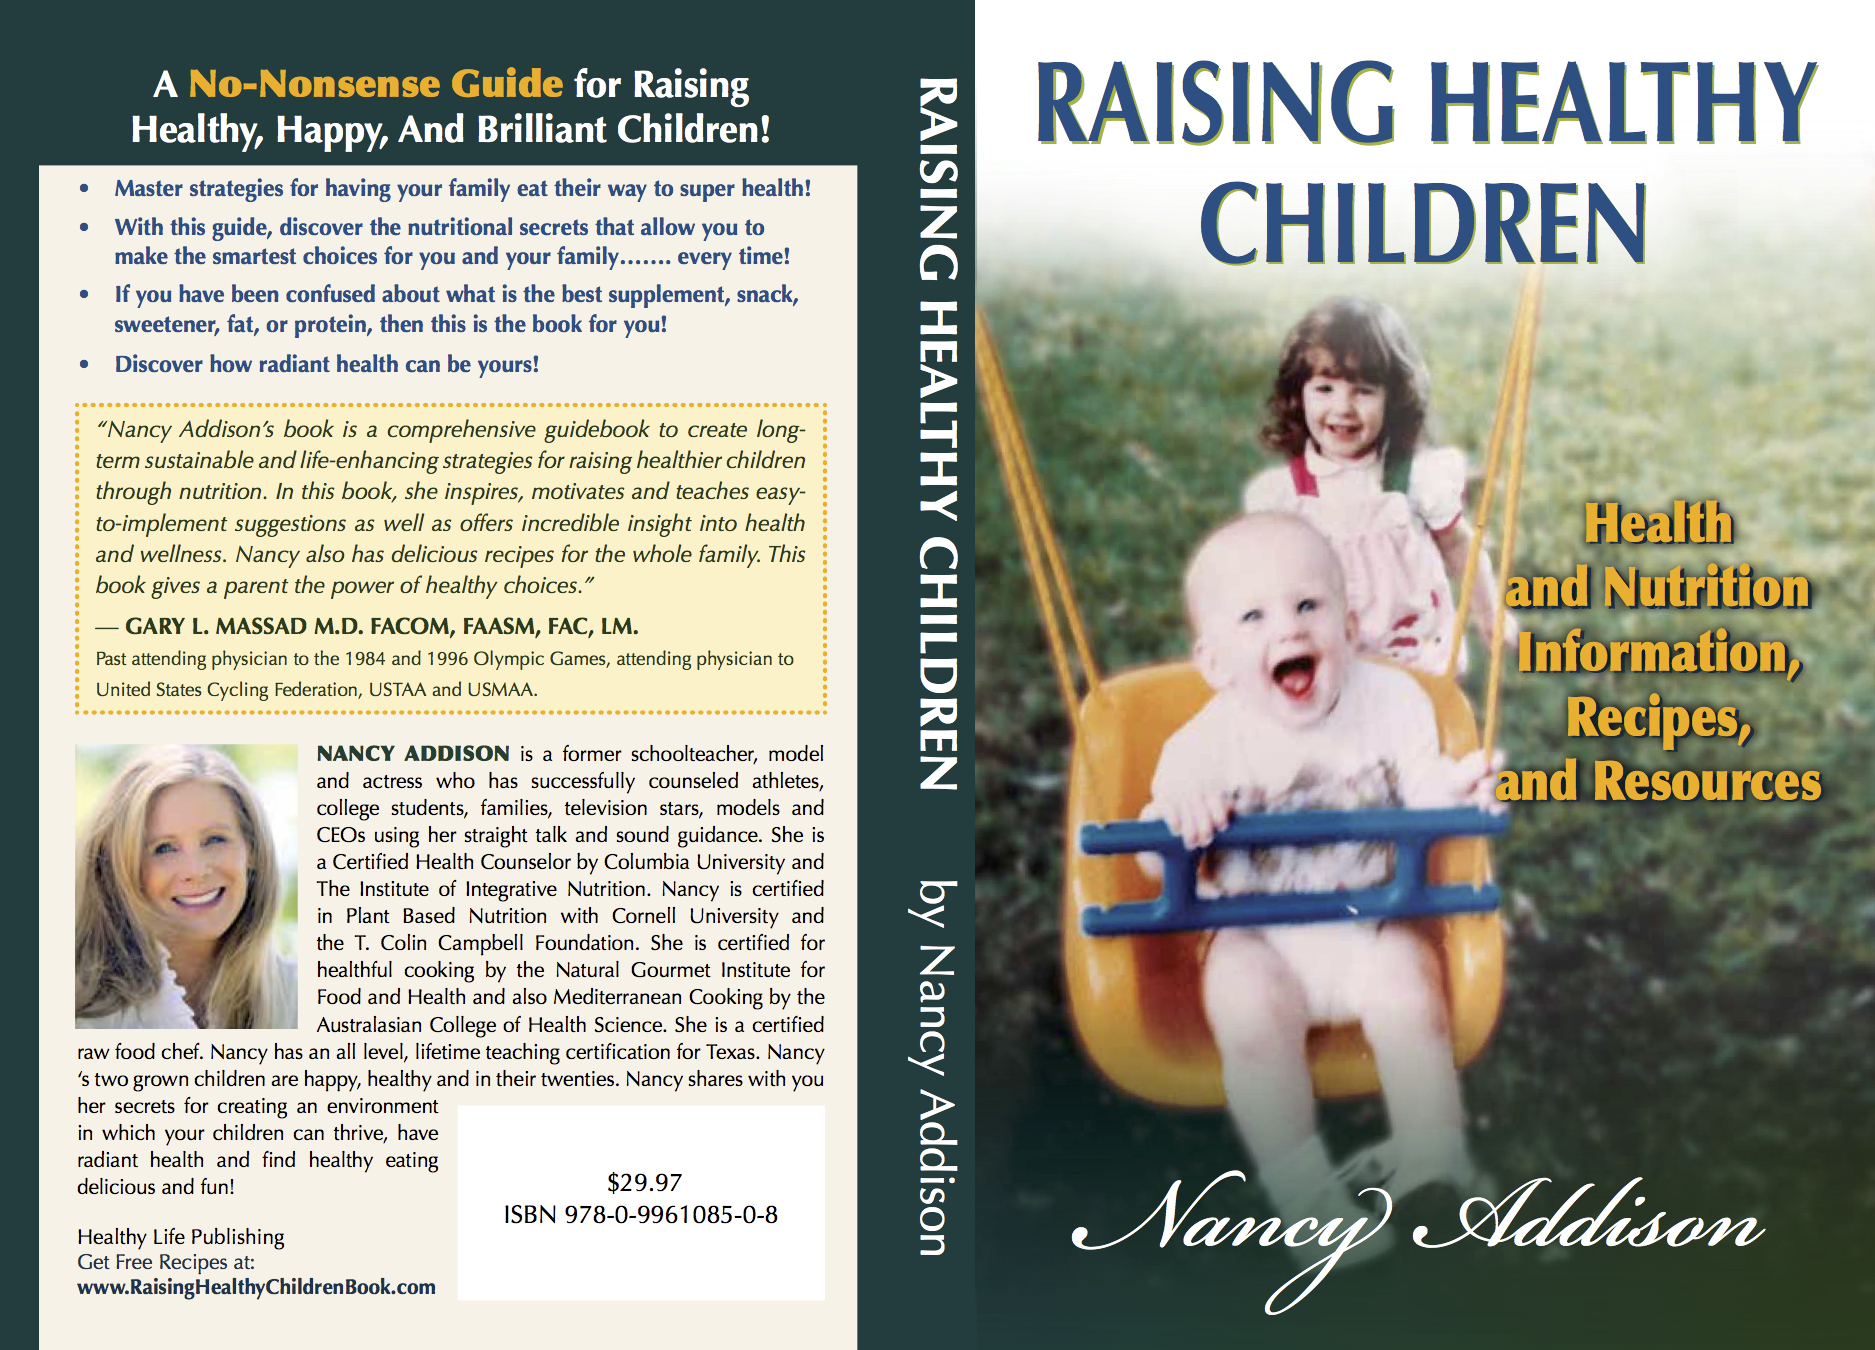 a guide to raising healthy children Parent's nutrition bible : a guide to raising healthy children item preview remove-circle share or embed this item internet archive books american libraries.